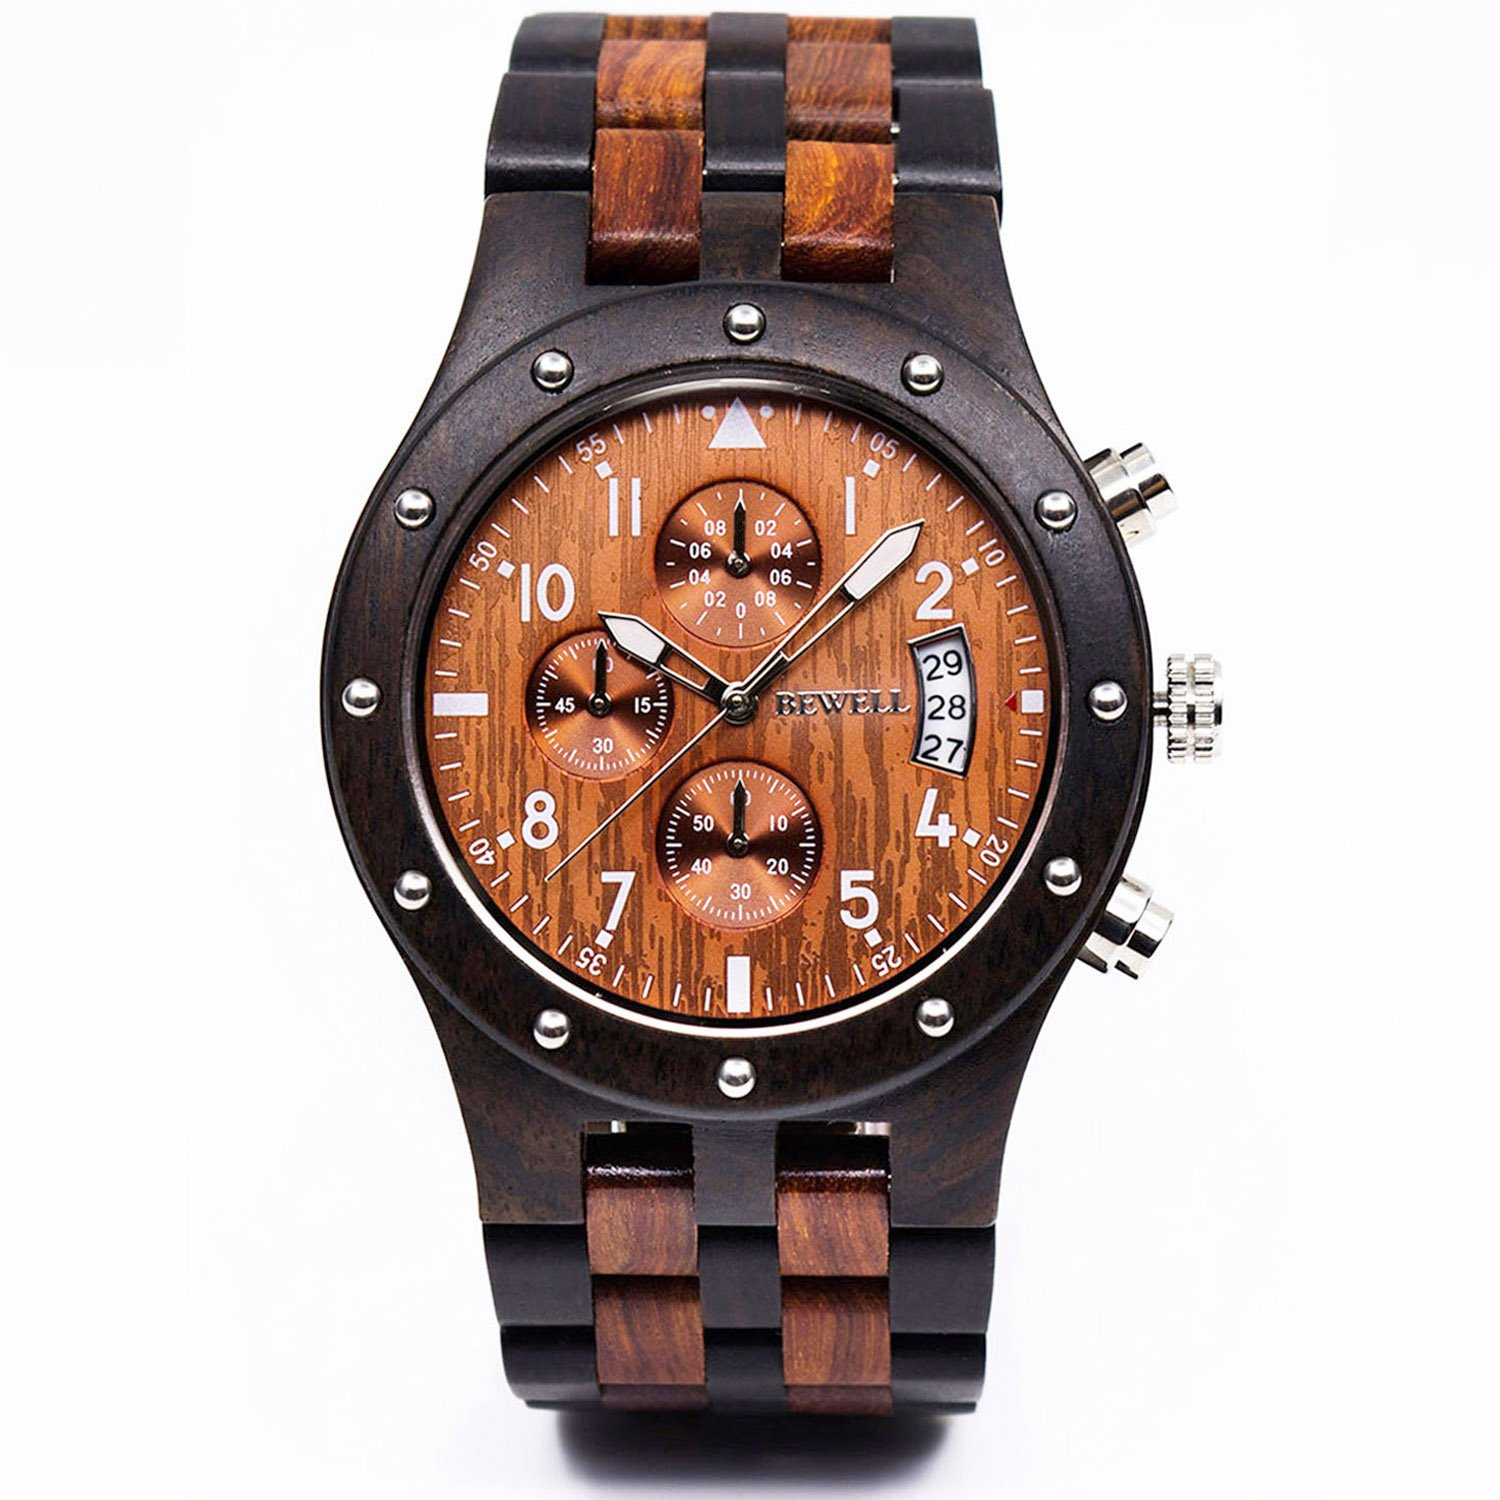 quality watch for gifts also pin high eco or men rosewood customized handcrafted at custom sandalwood com wood from tmbr and s friendly available made maple tmbrs mensstyle watches